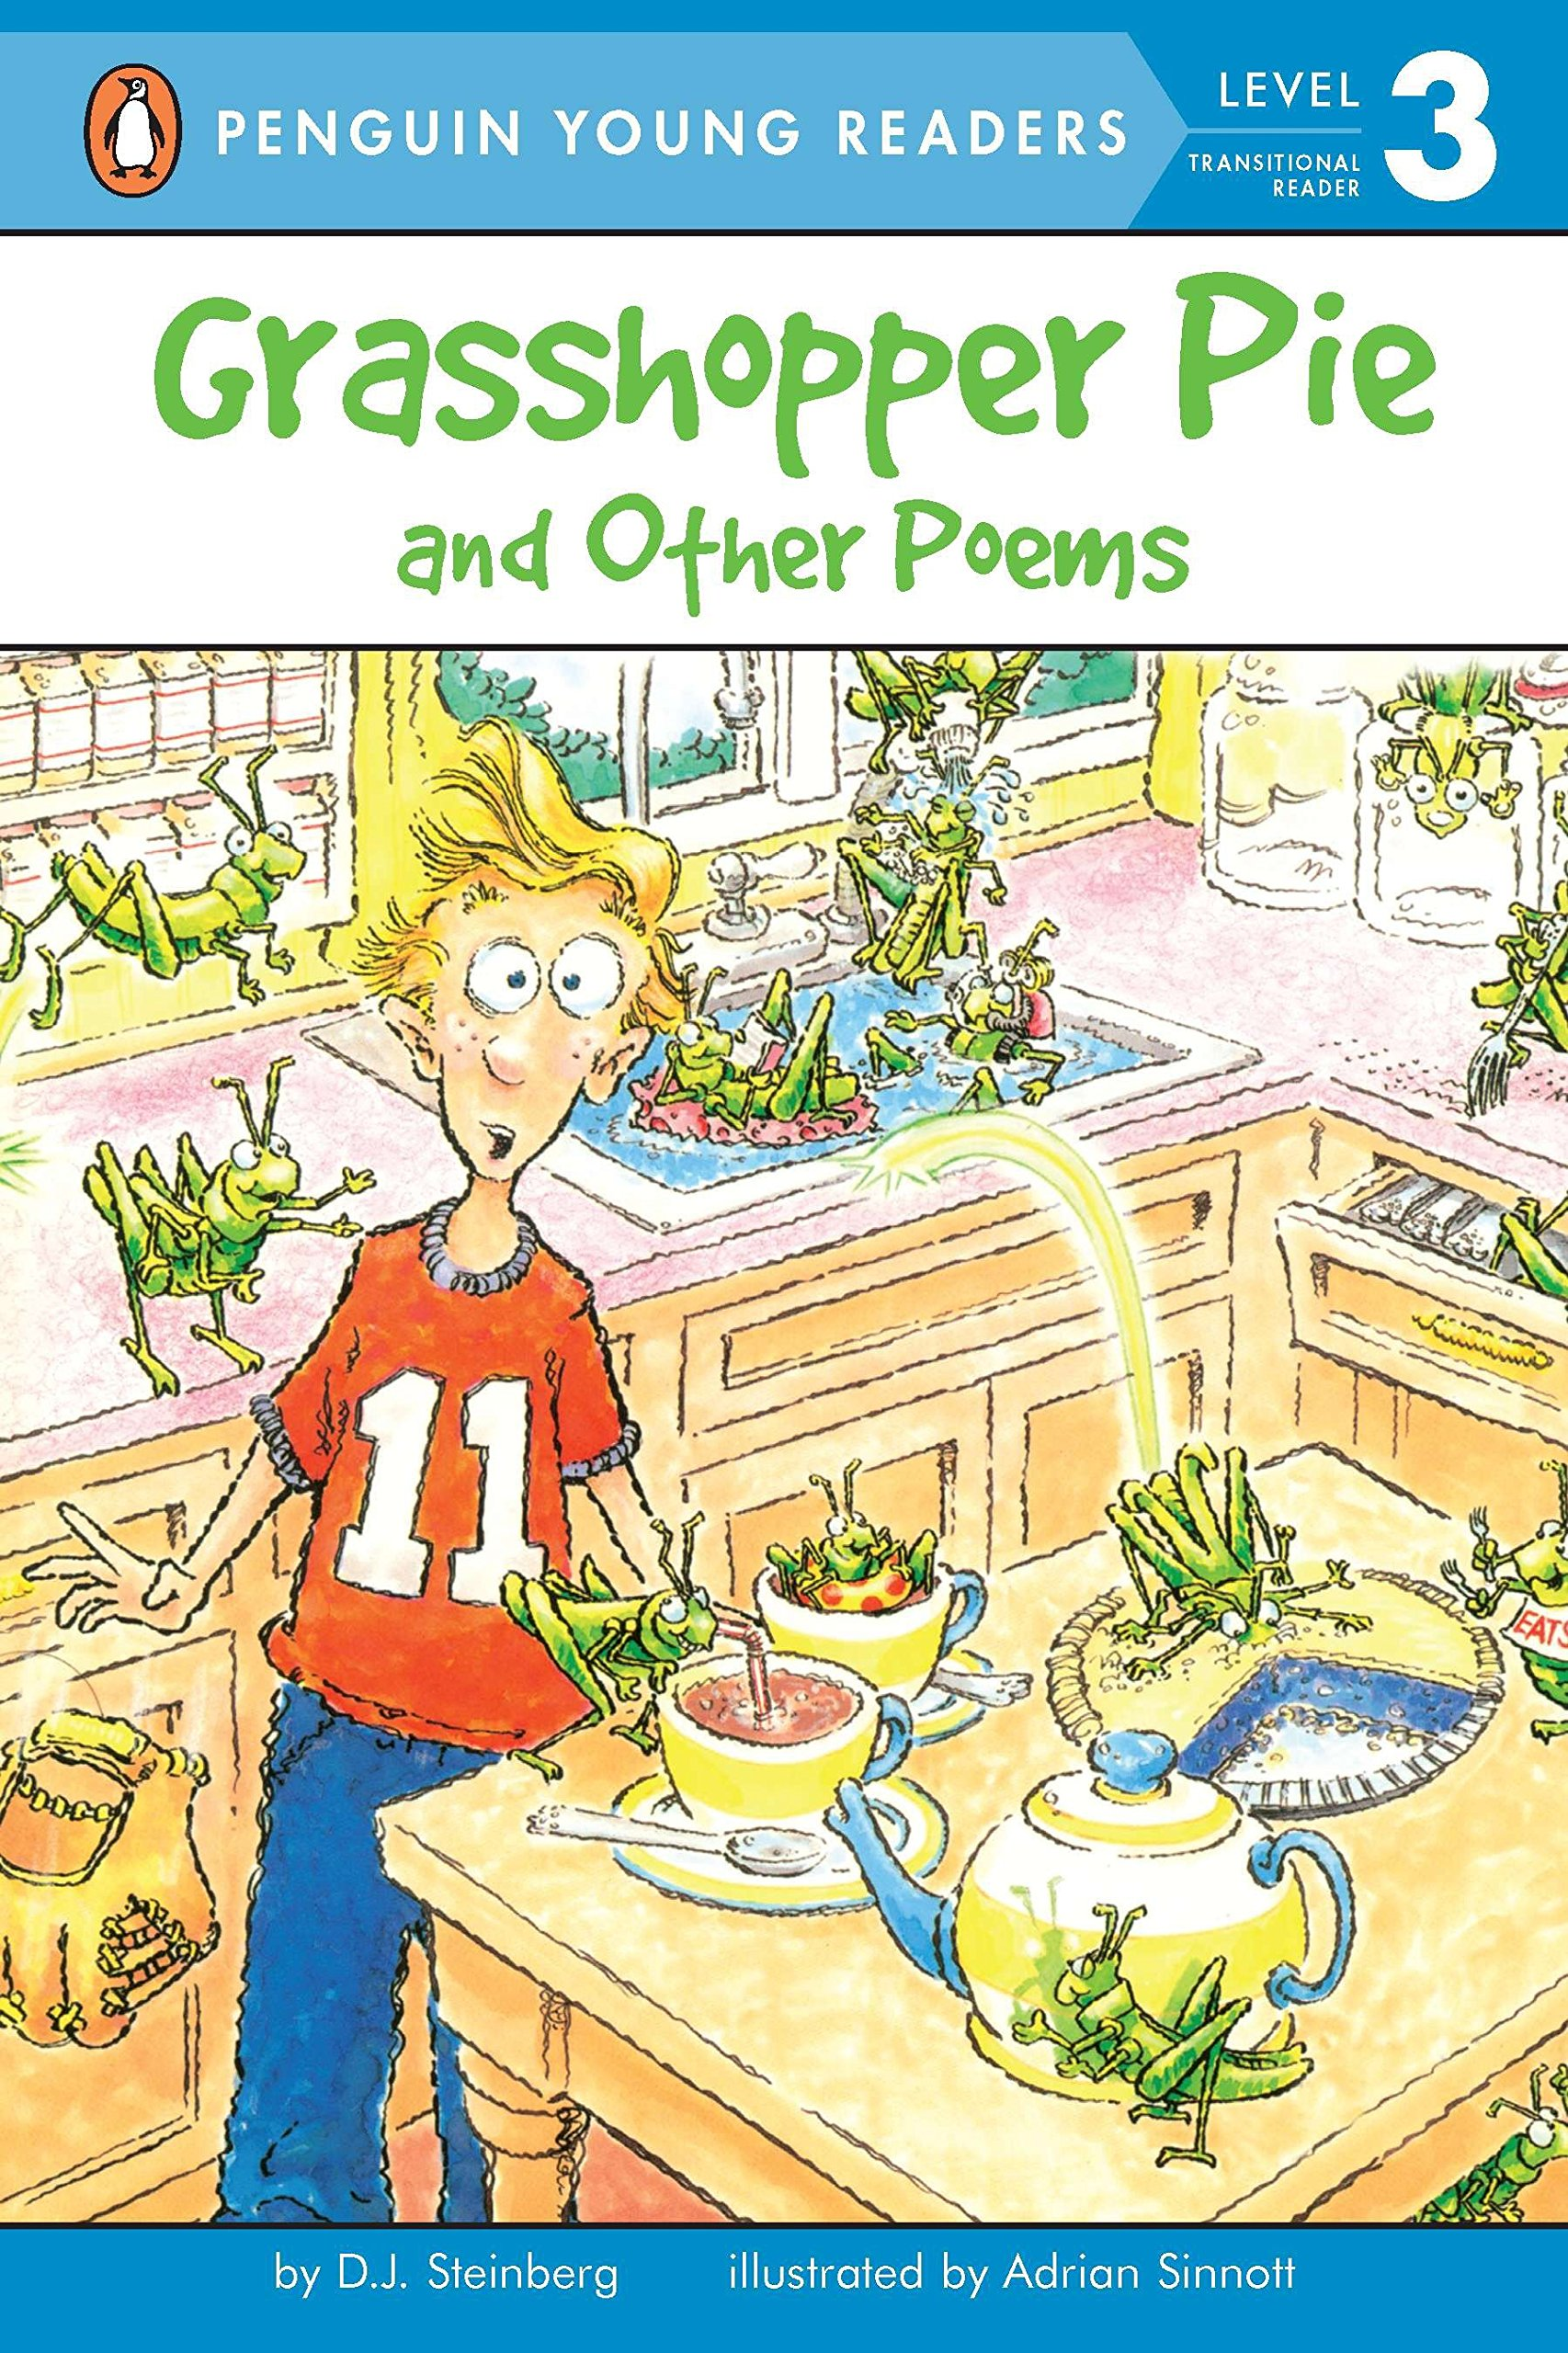 Grasshopper Pie and Other Poems (Penguin Young Readers. Level 3)